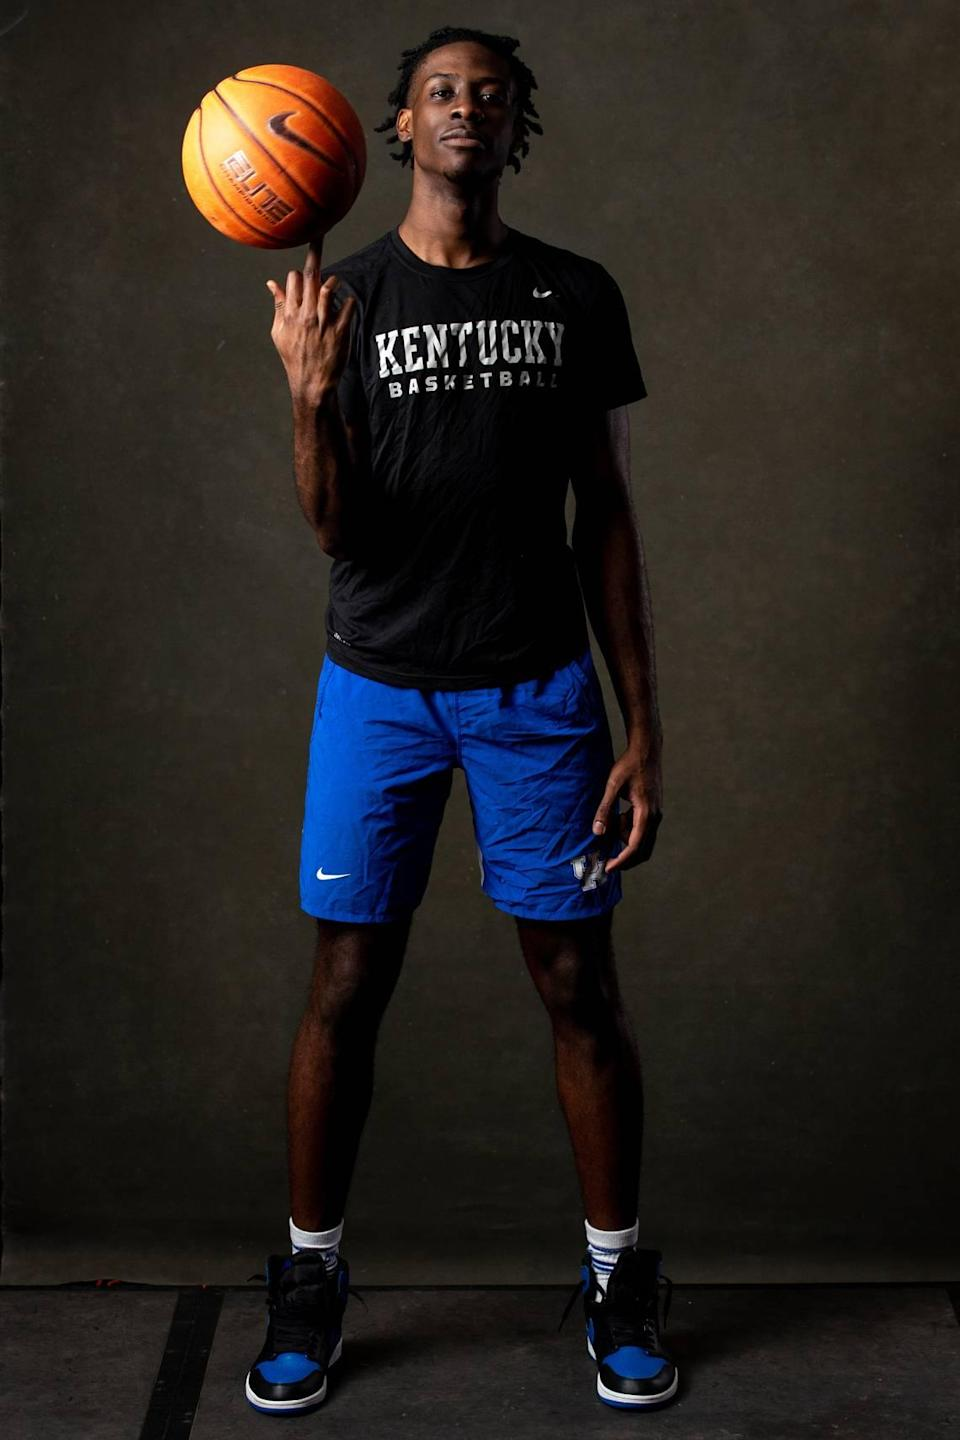 Terrence Clarke, whose dealt with a right leg injury for most of his lone season at Kentucky, averaged 9.6 points, 2.6 rebounds and 2.0 assists in eight games.